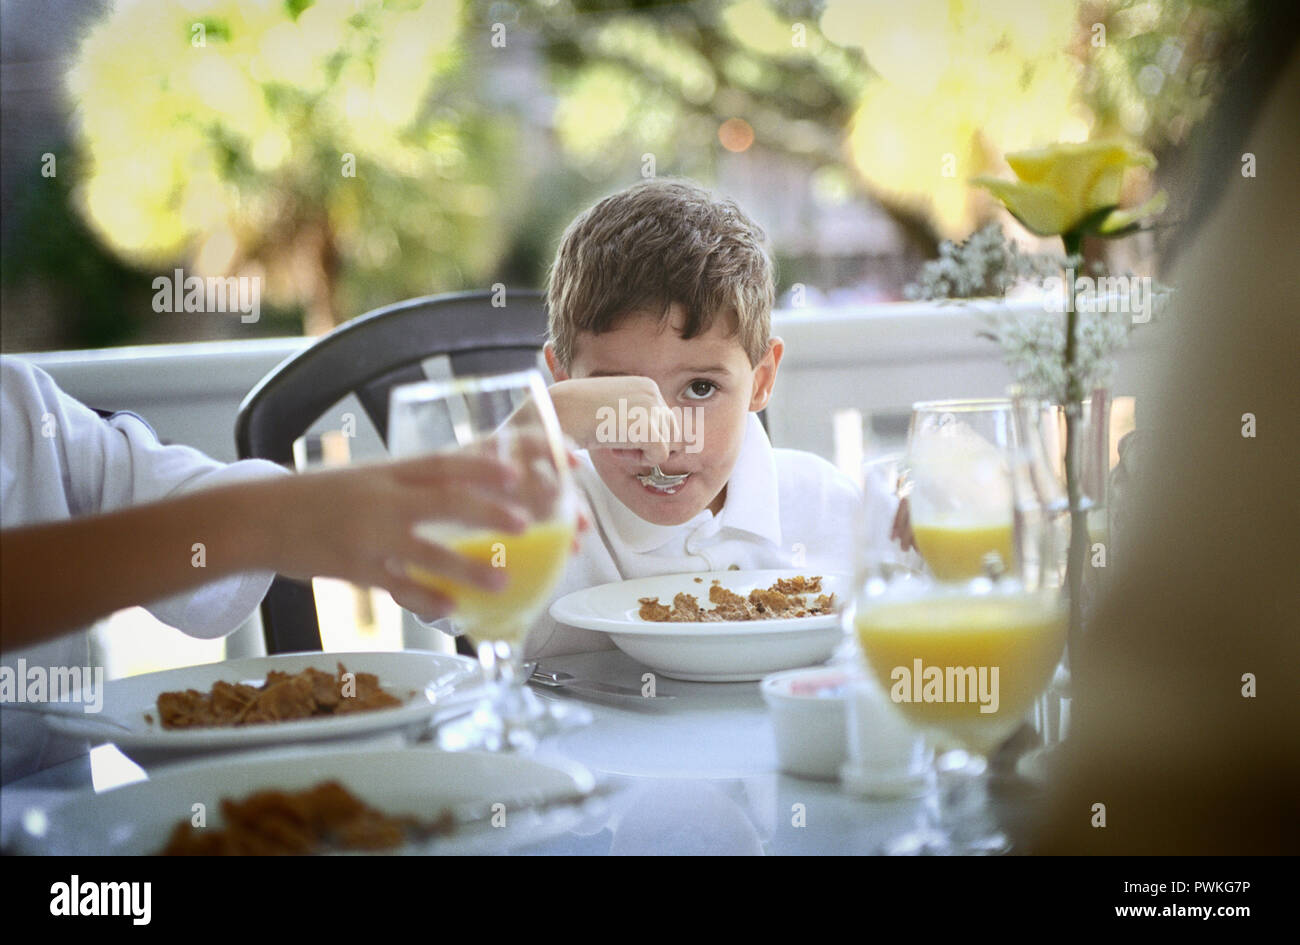 A small boy eating his breakfast at a table. - Stock Image